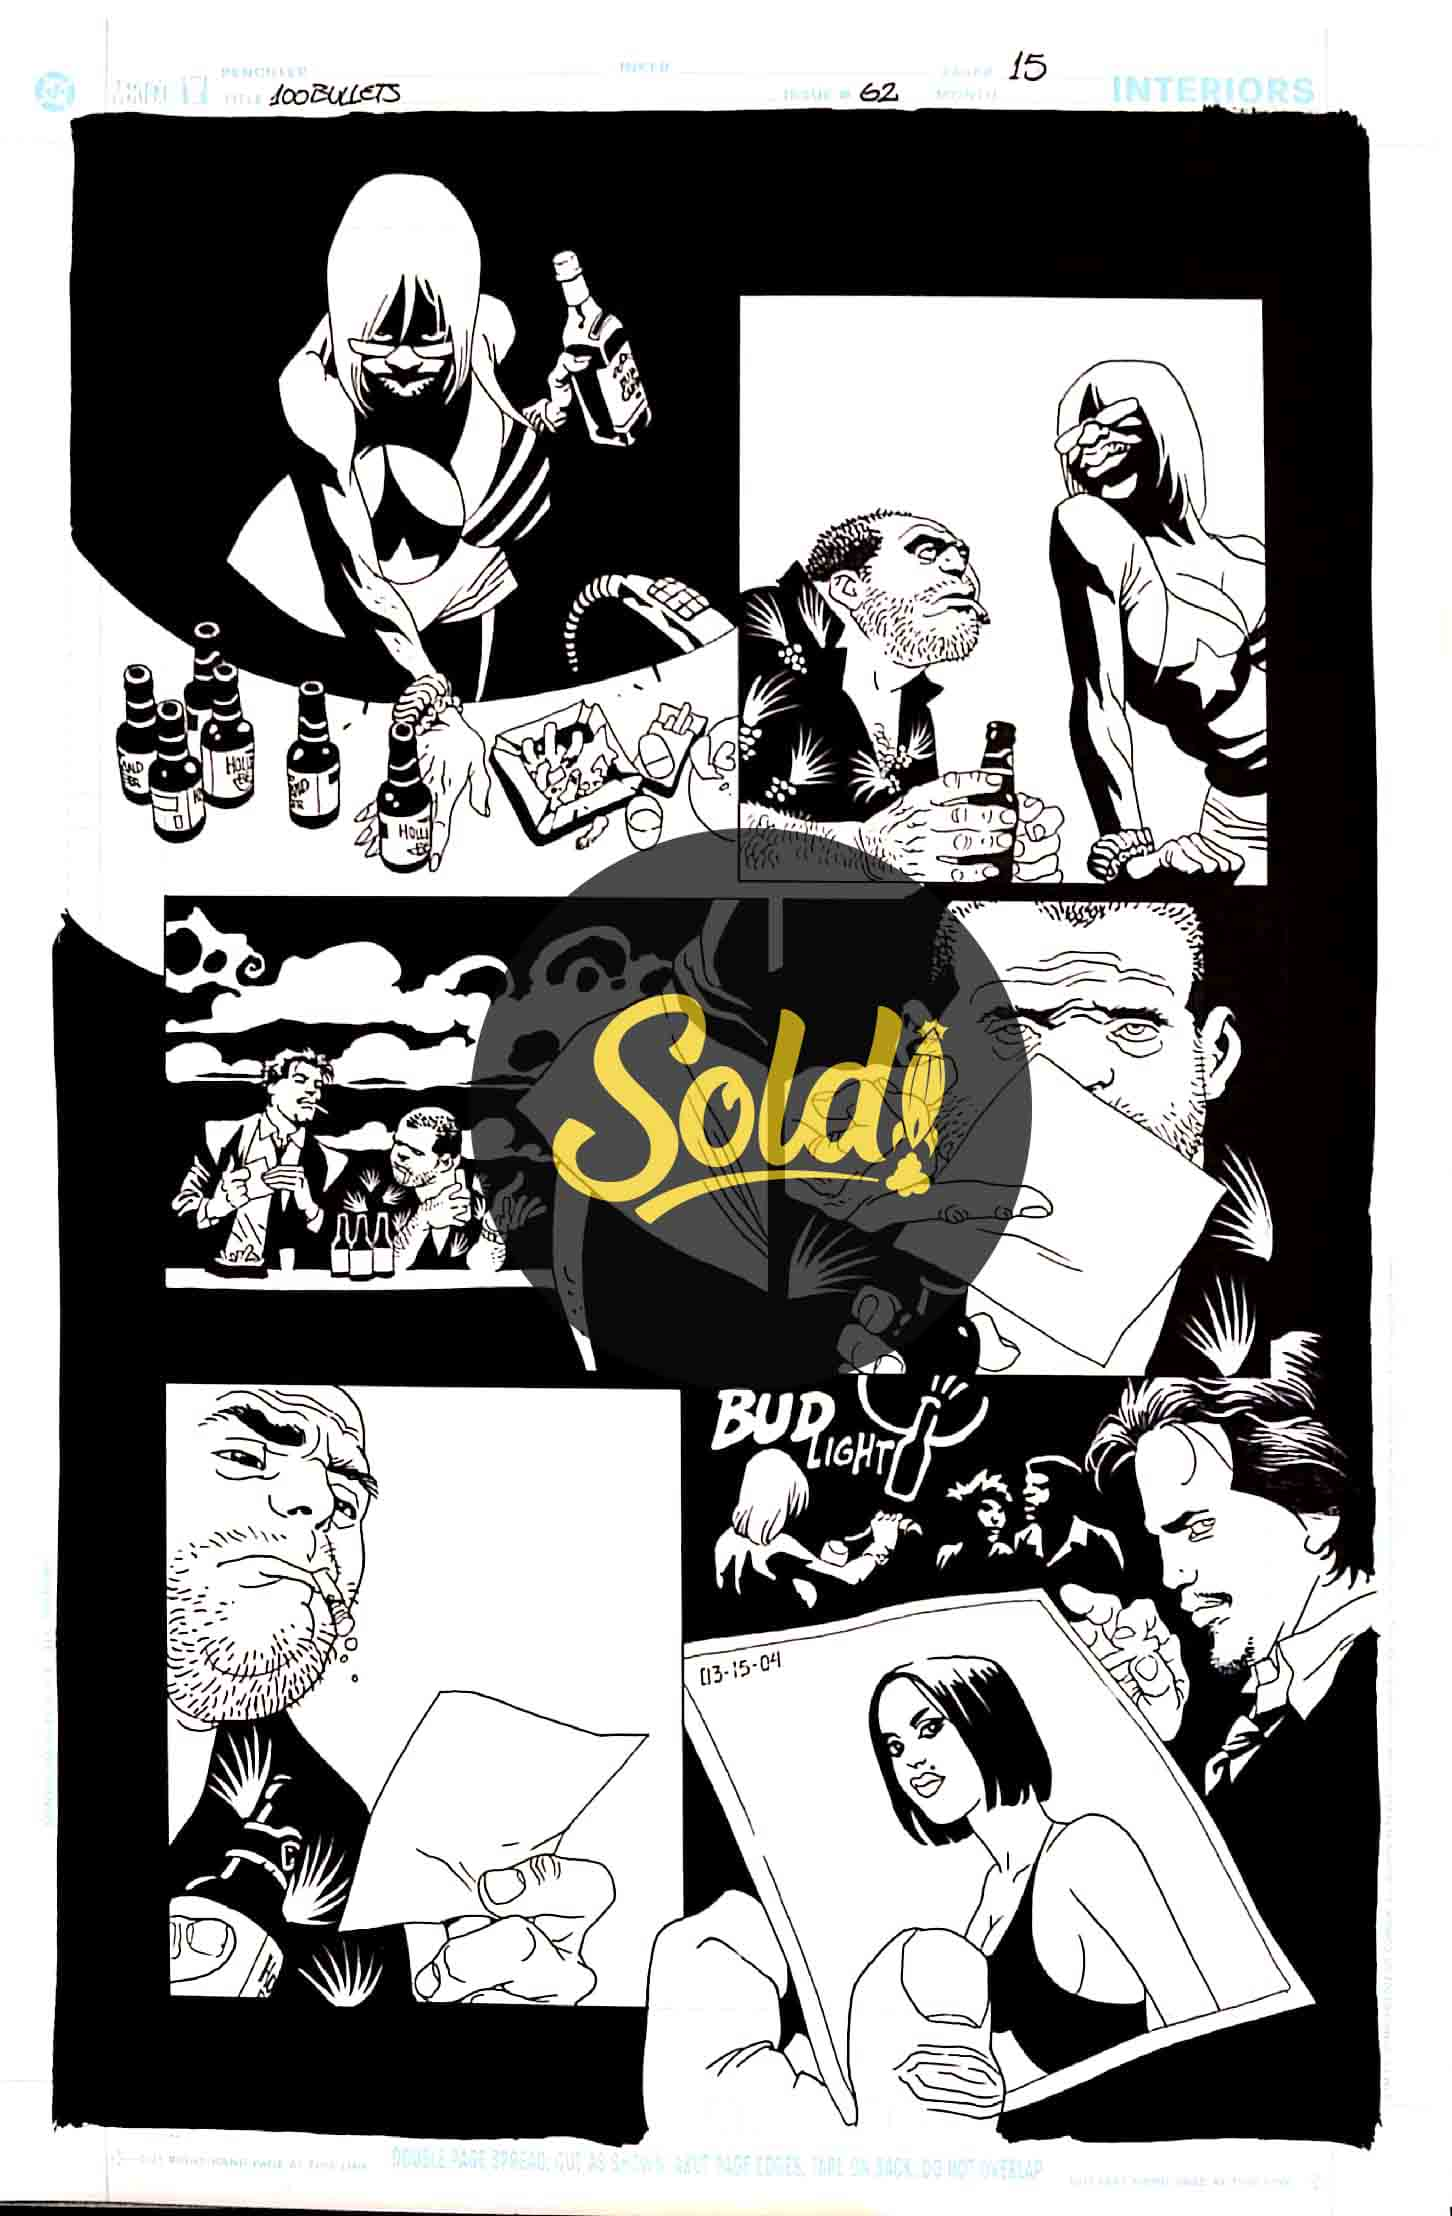 Issue 62, page 15 - sold